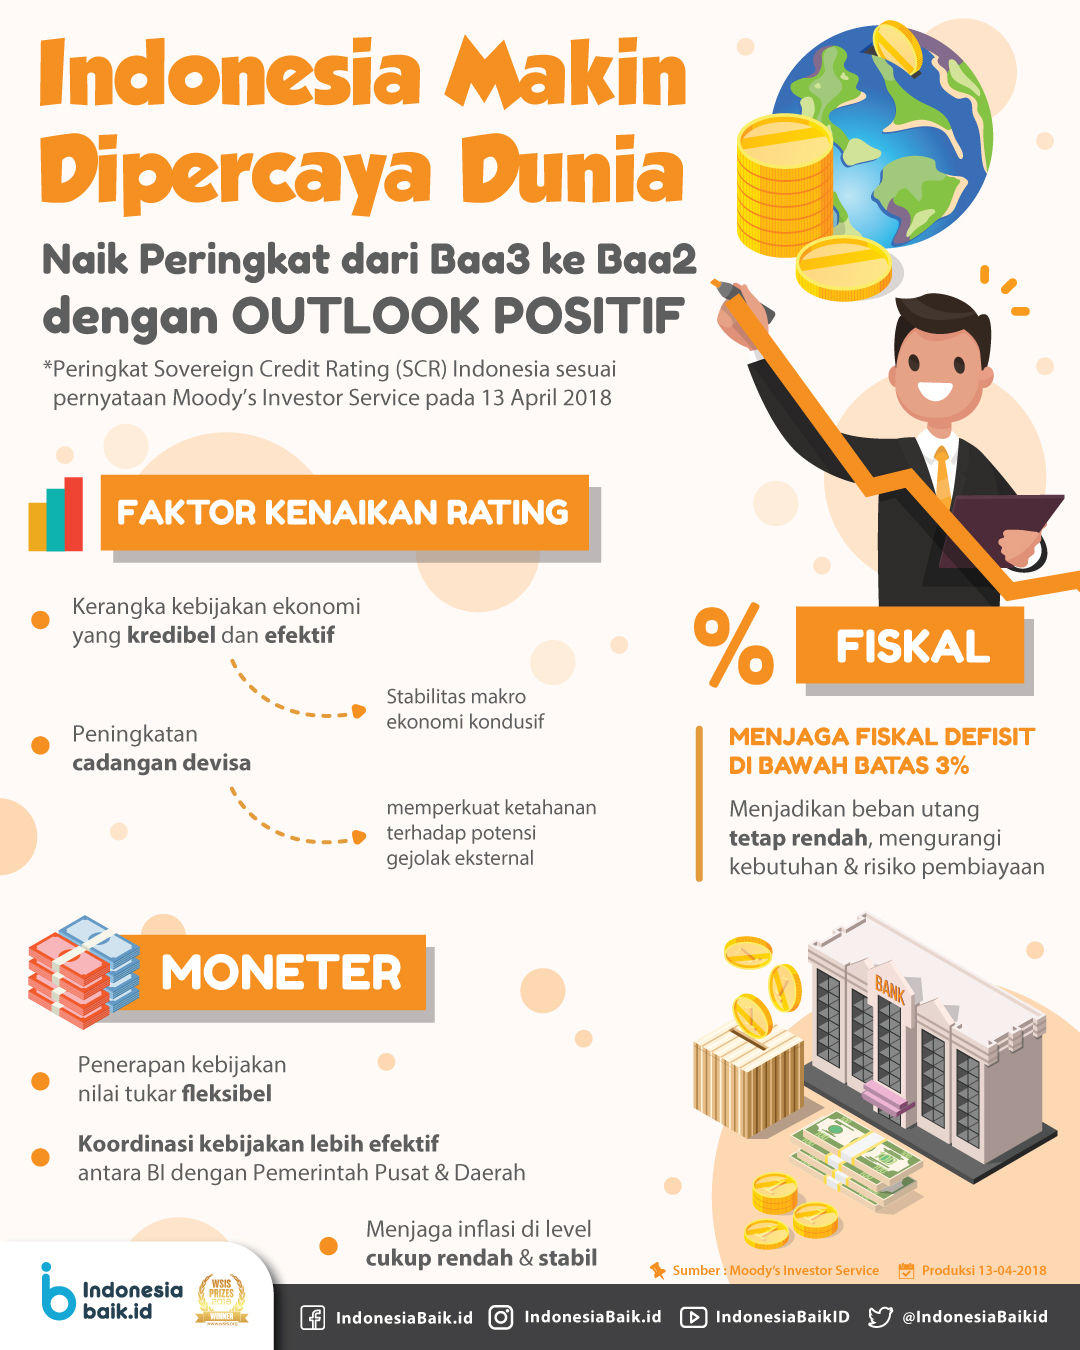 Indonesia Makin Dipercaya Dunia